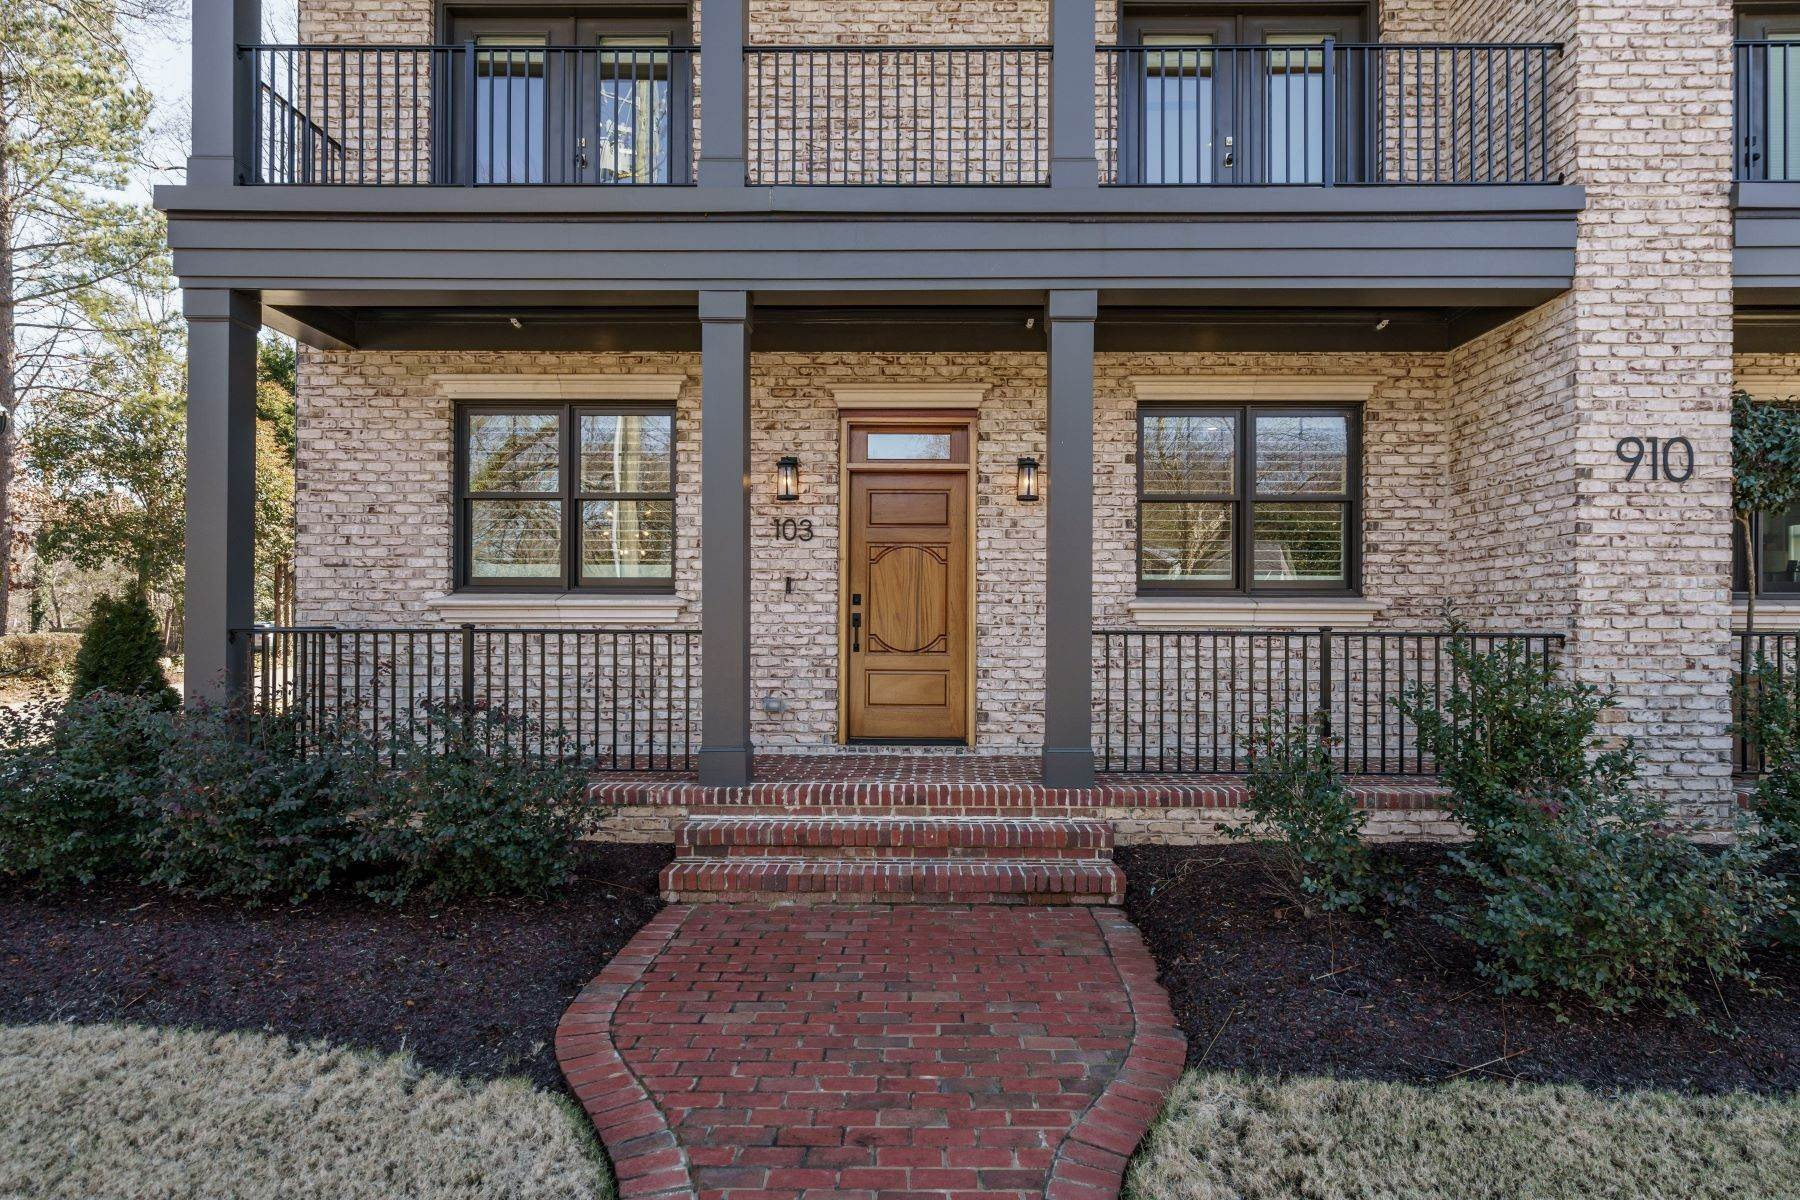 3. Single Family Homes for Sale at 910 Oberlin Rd Unit #103 910 Oberlin Road, Unit #103 Raleigh, North Carolina 27605 United States